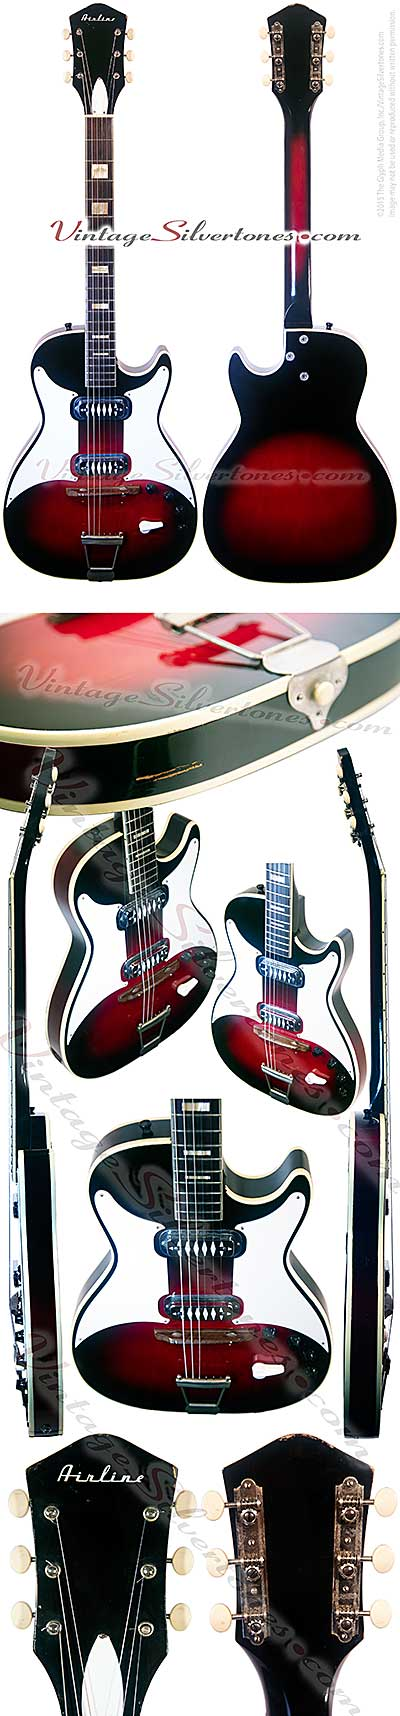 Airline - Stratotone - two pickup, cherry redburst, hollow body electric guitar made in Chicago IL USA circa 1964